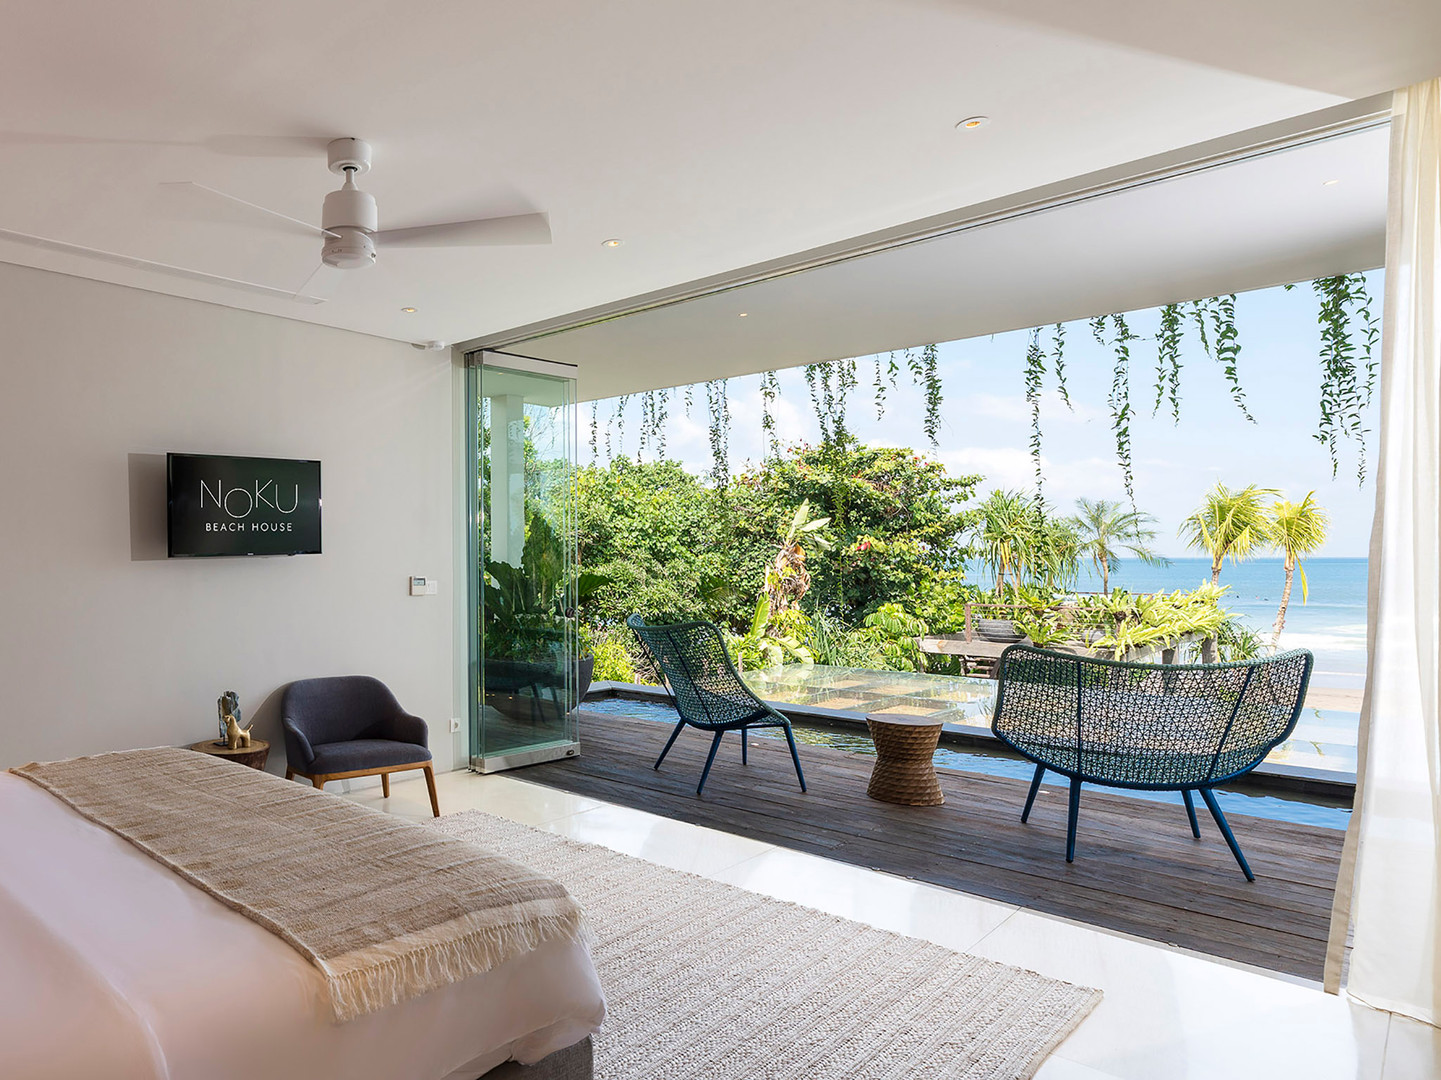 Noku Beach House - Marvelous view from b